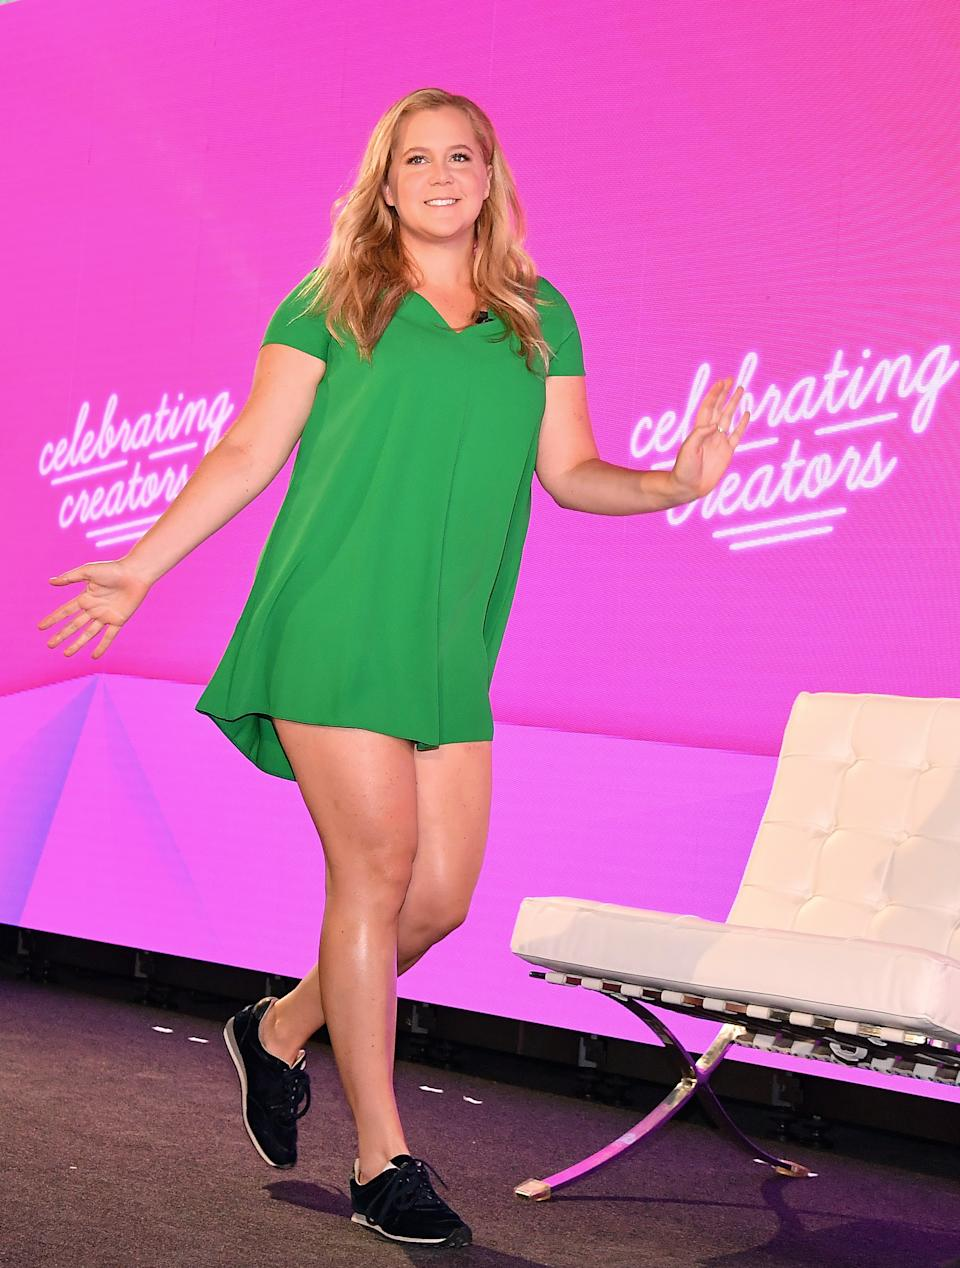 Amy Schumer revealed on Instagram that she and husband Chris Fischer successfully have one embryo following a round of IVF. (Photo: ANGELA WEISS/AFP via Getty Images)